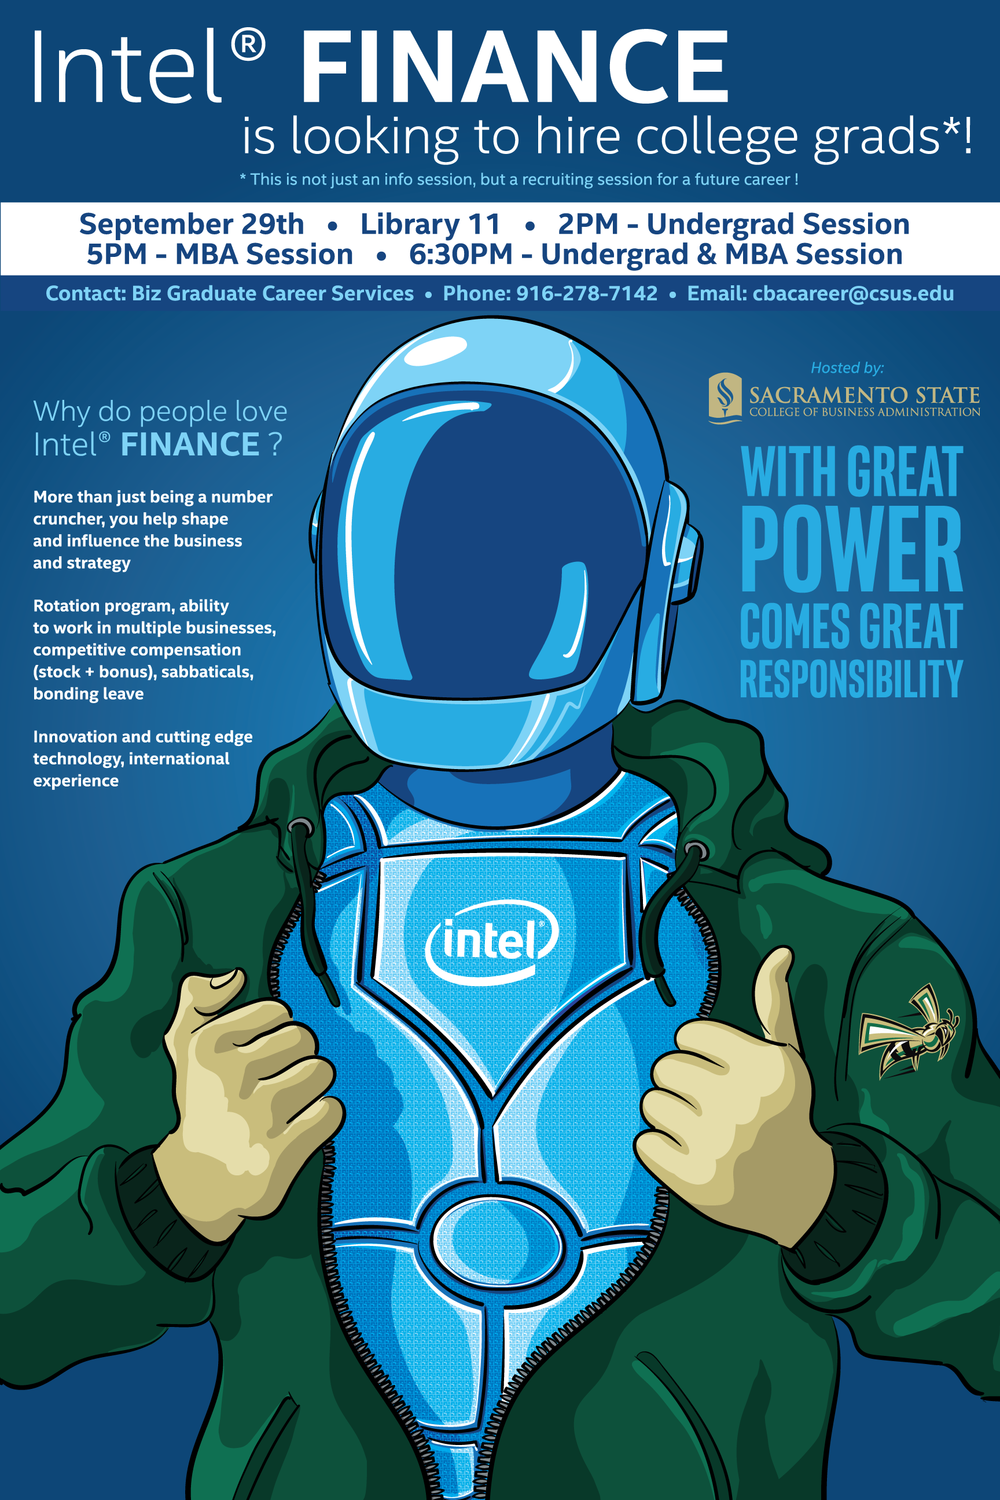 CSUS_Intel_Finance_Poster_SUPER_HERO_FINAL.png